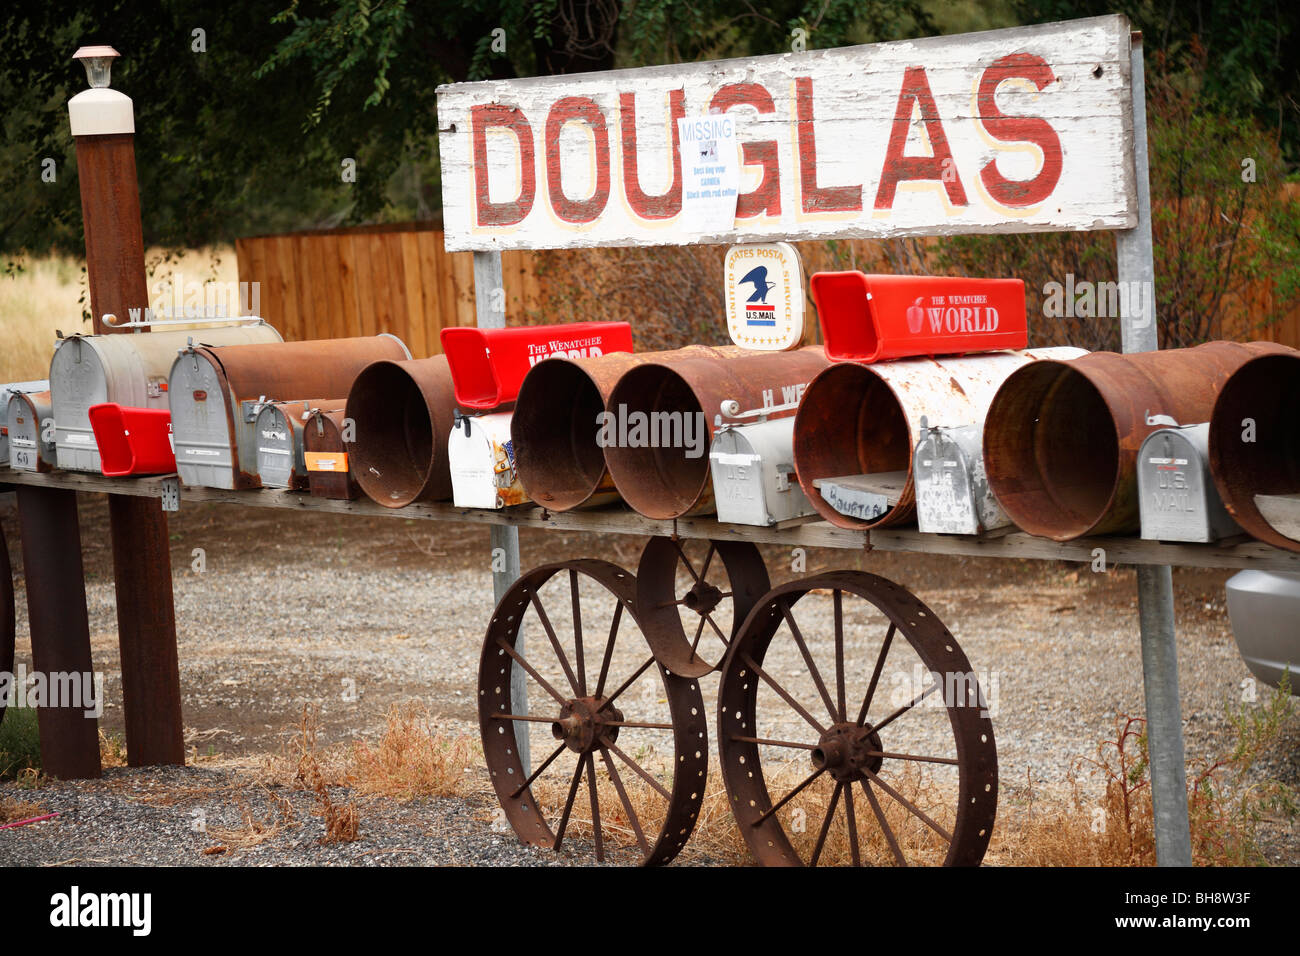 Row of colourful old mail boxes and town sign, Douglas, Washington, USA - Stock Image